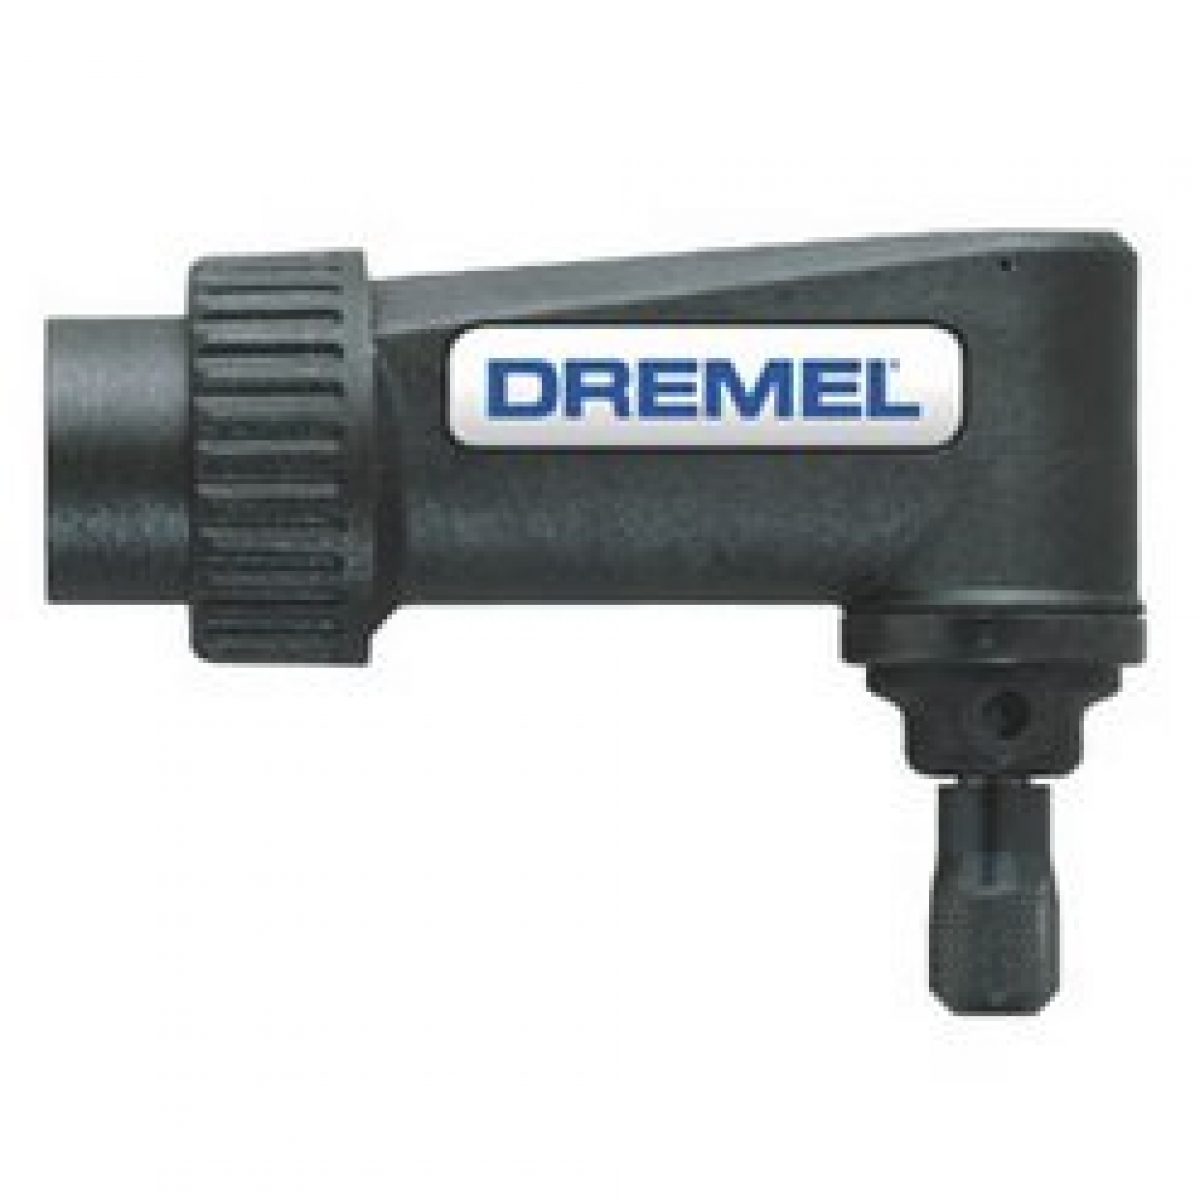 dremel right angle attachment 575 my power tools. Black Bedroom Furniture Sets. Home Design Ideas